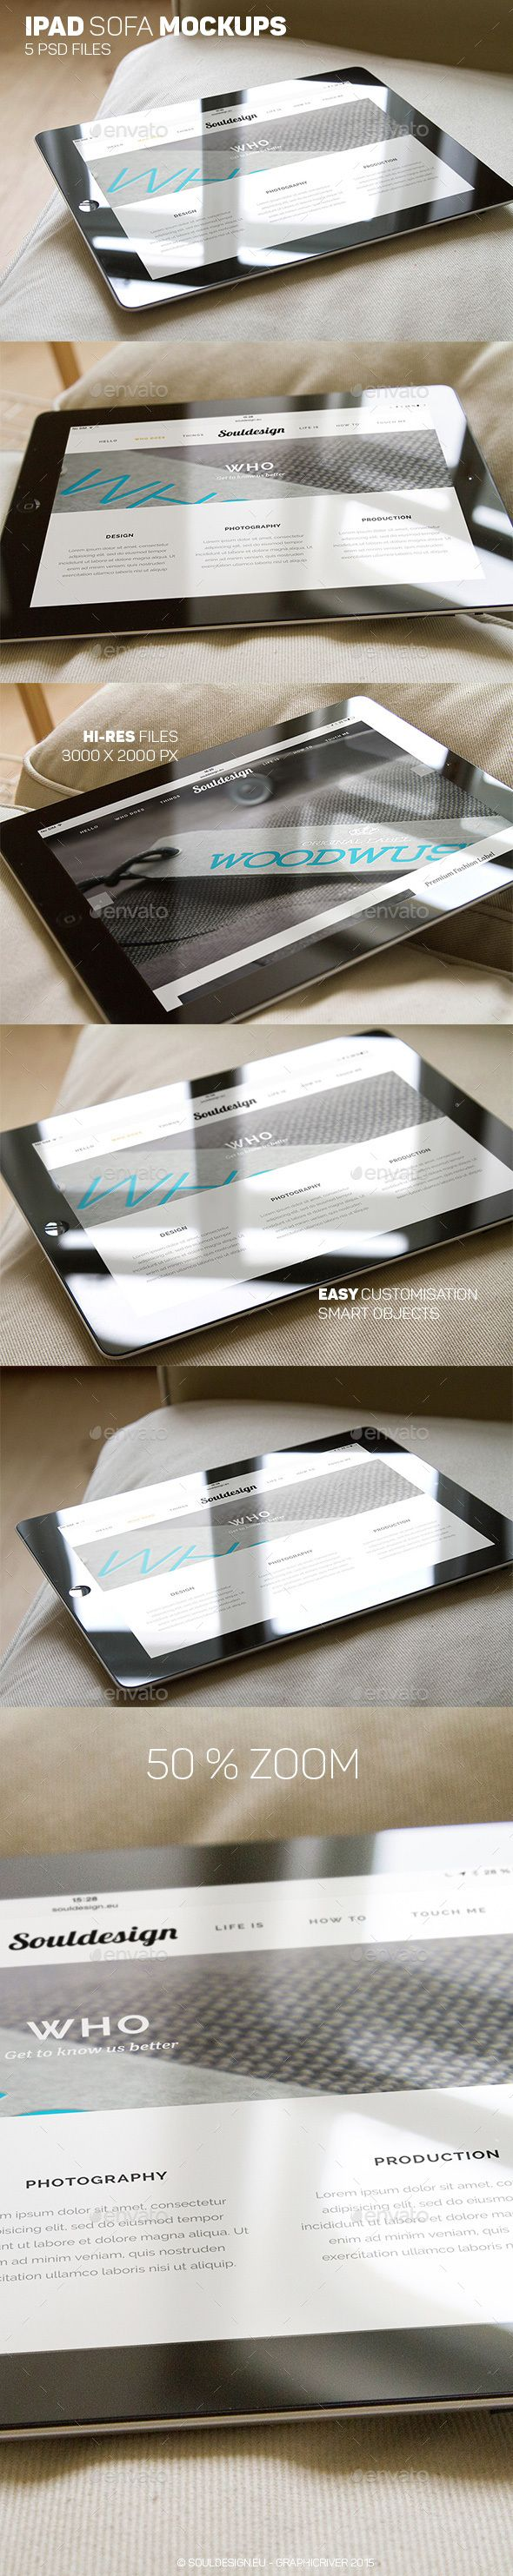 iPad Closeup Mockups Sofa — Photoshop PSD #mobile #apple • Available here → https://graphicriver.net/item/ipad-closeup-mockups-sofa/12356839?ref=pxcr